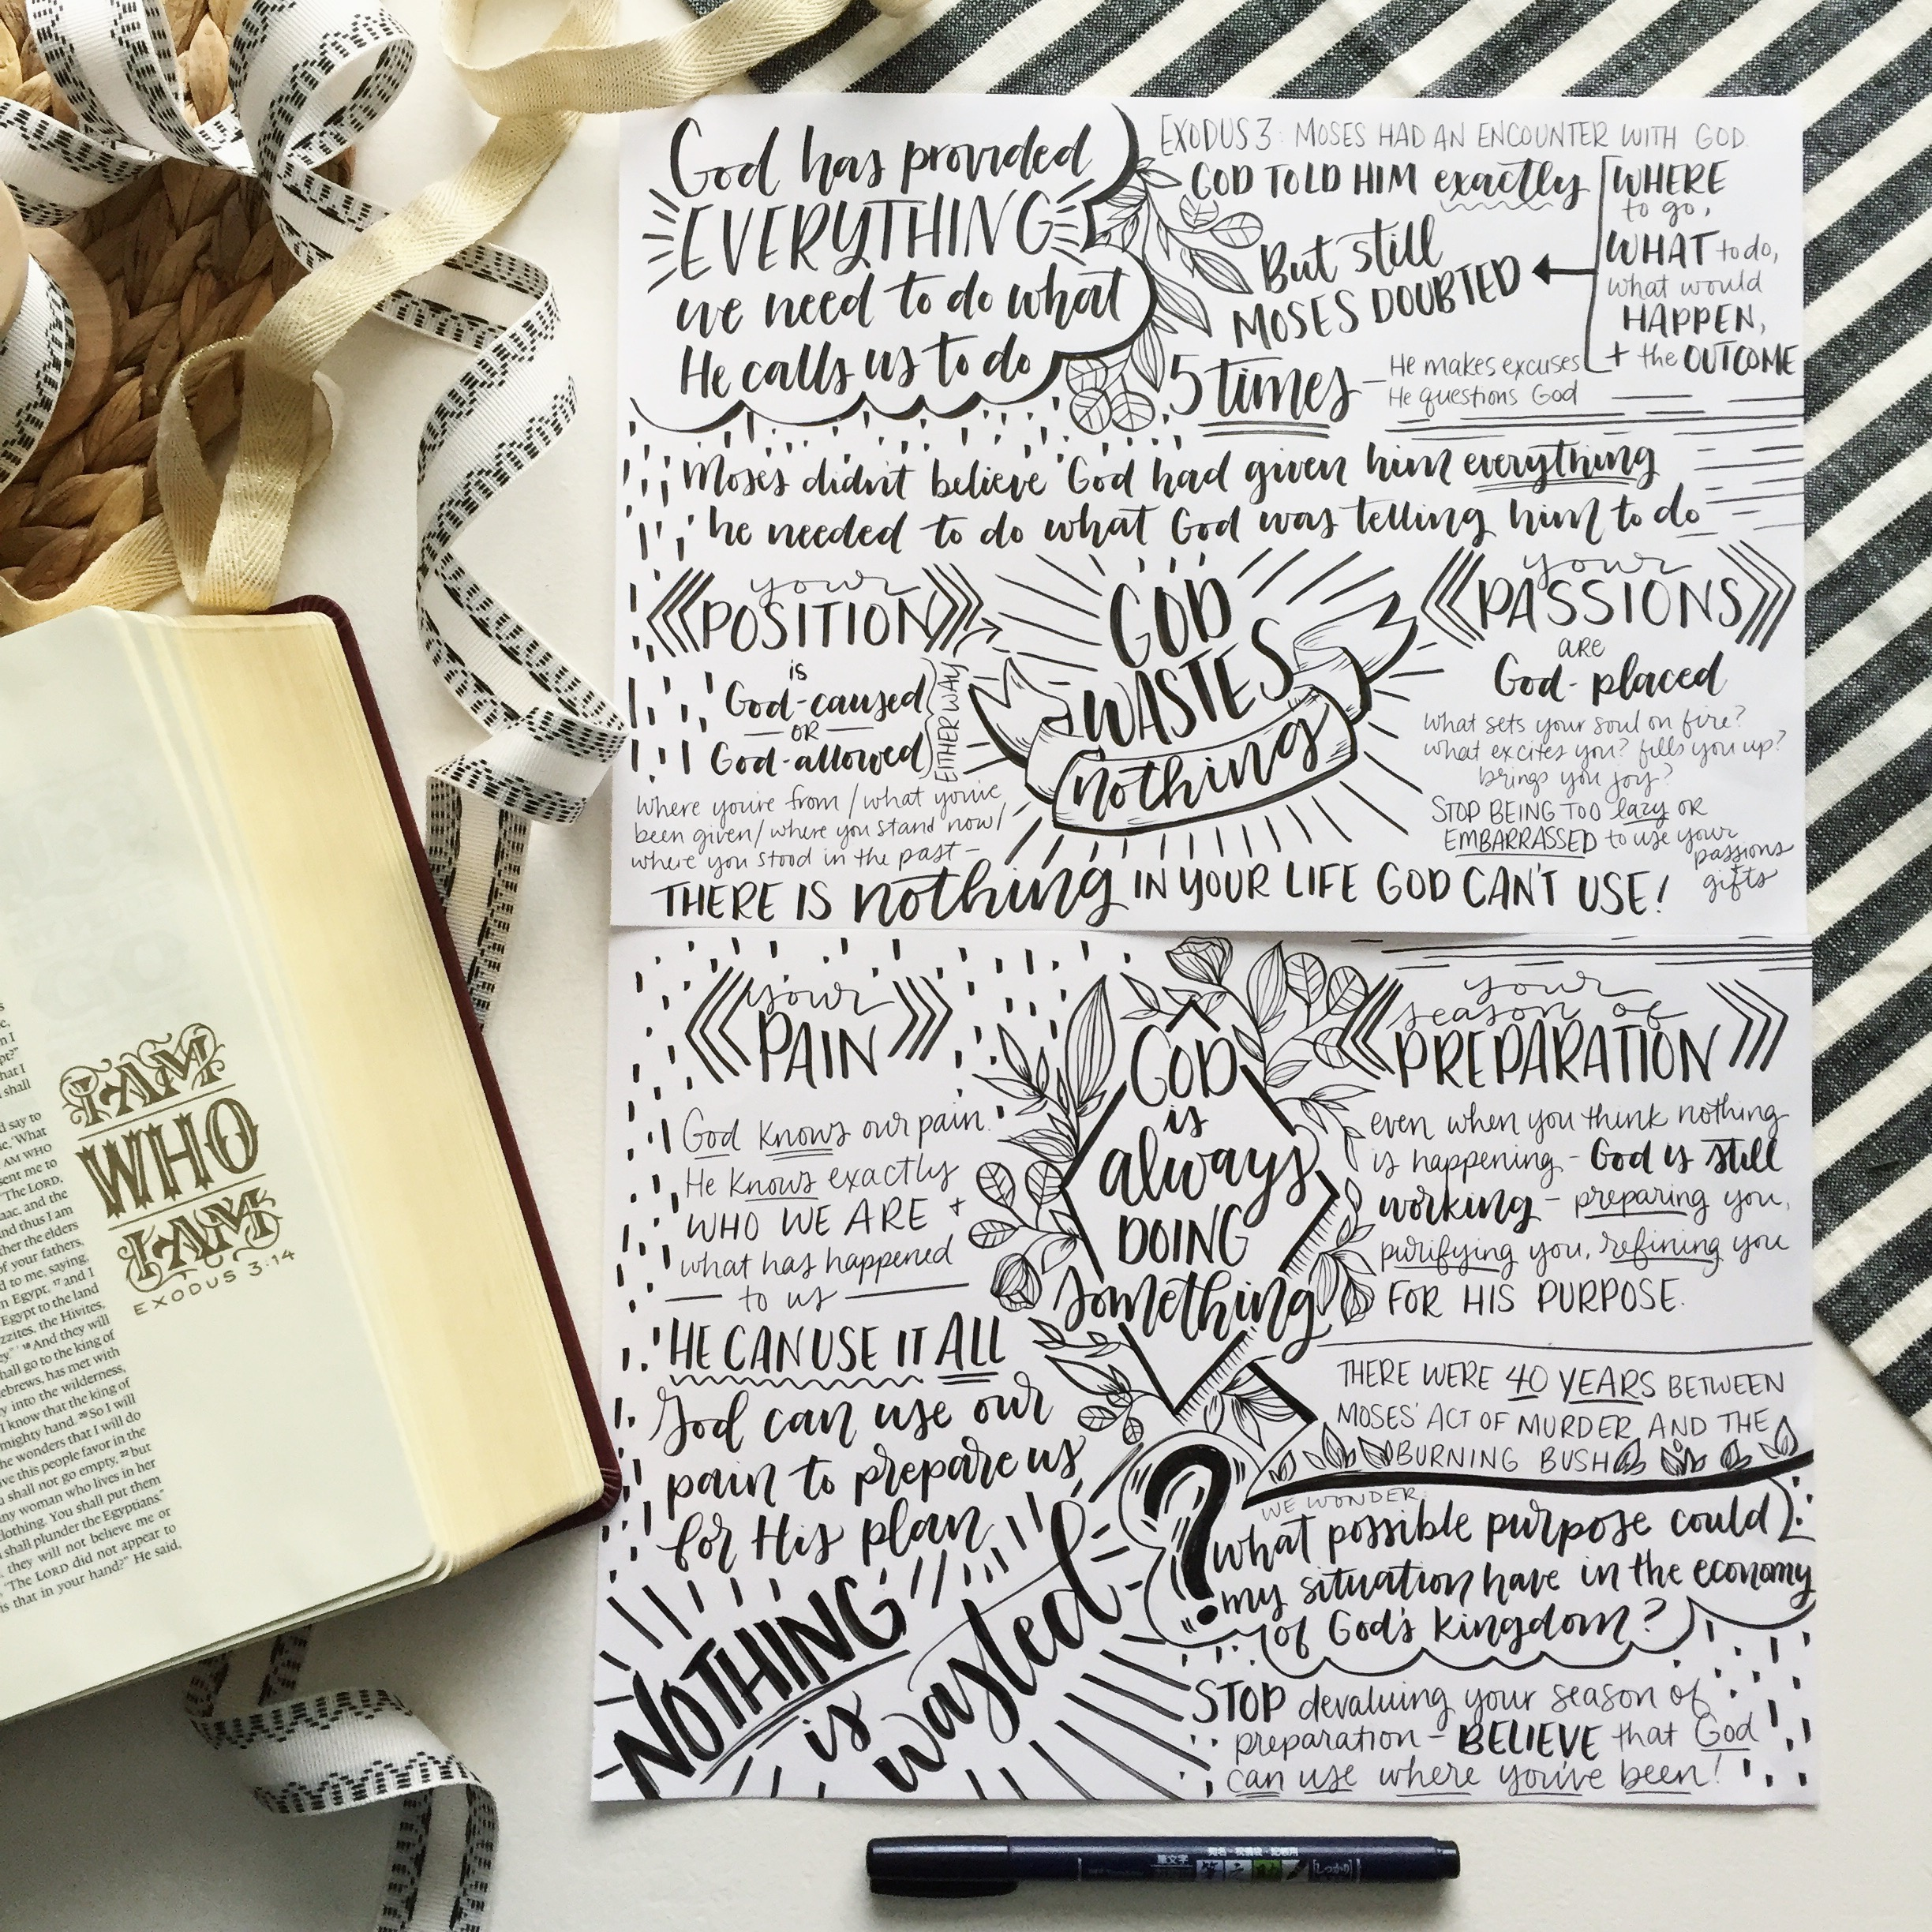 Notes taken at the Women's Conference at our church last year, words spoken by one of my favorites,  Chrystal Evans Hurst